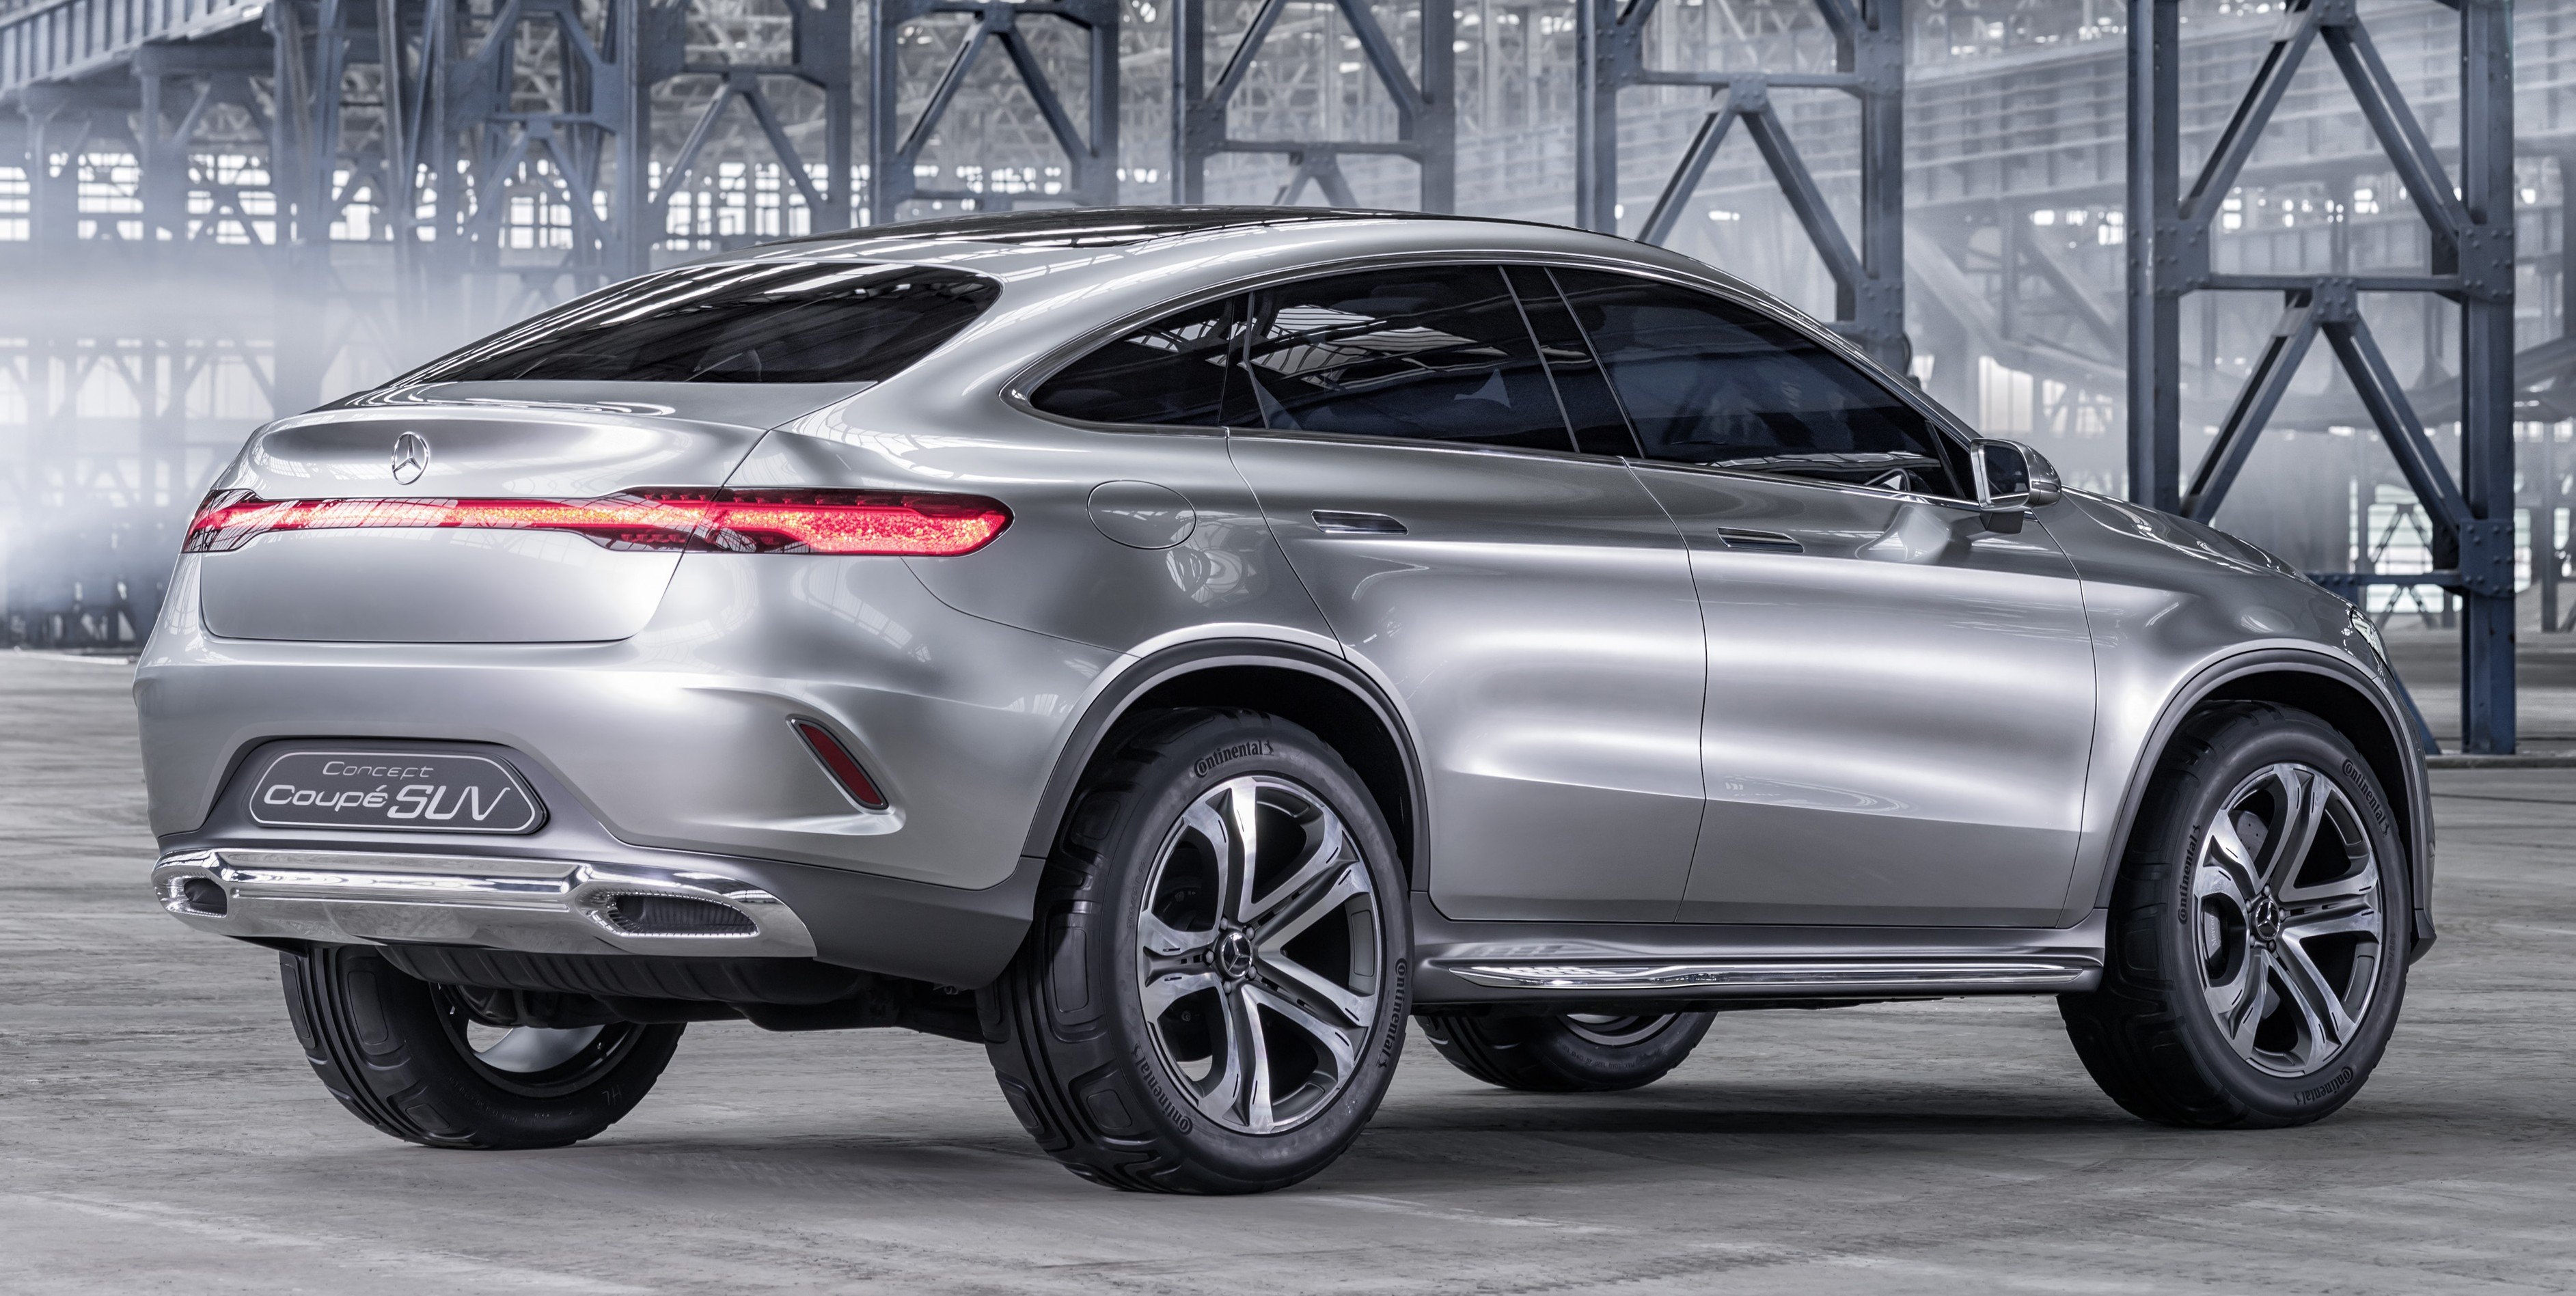 Mercedes benz coupe suv concept previews x6 rival image 242569 for Mercedes benz coupe suv